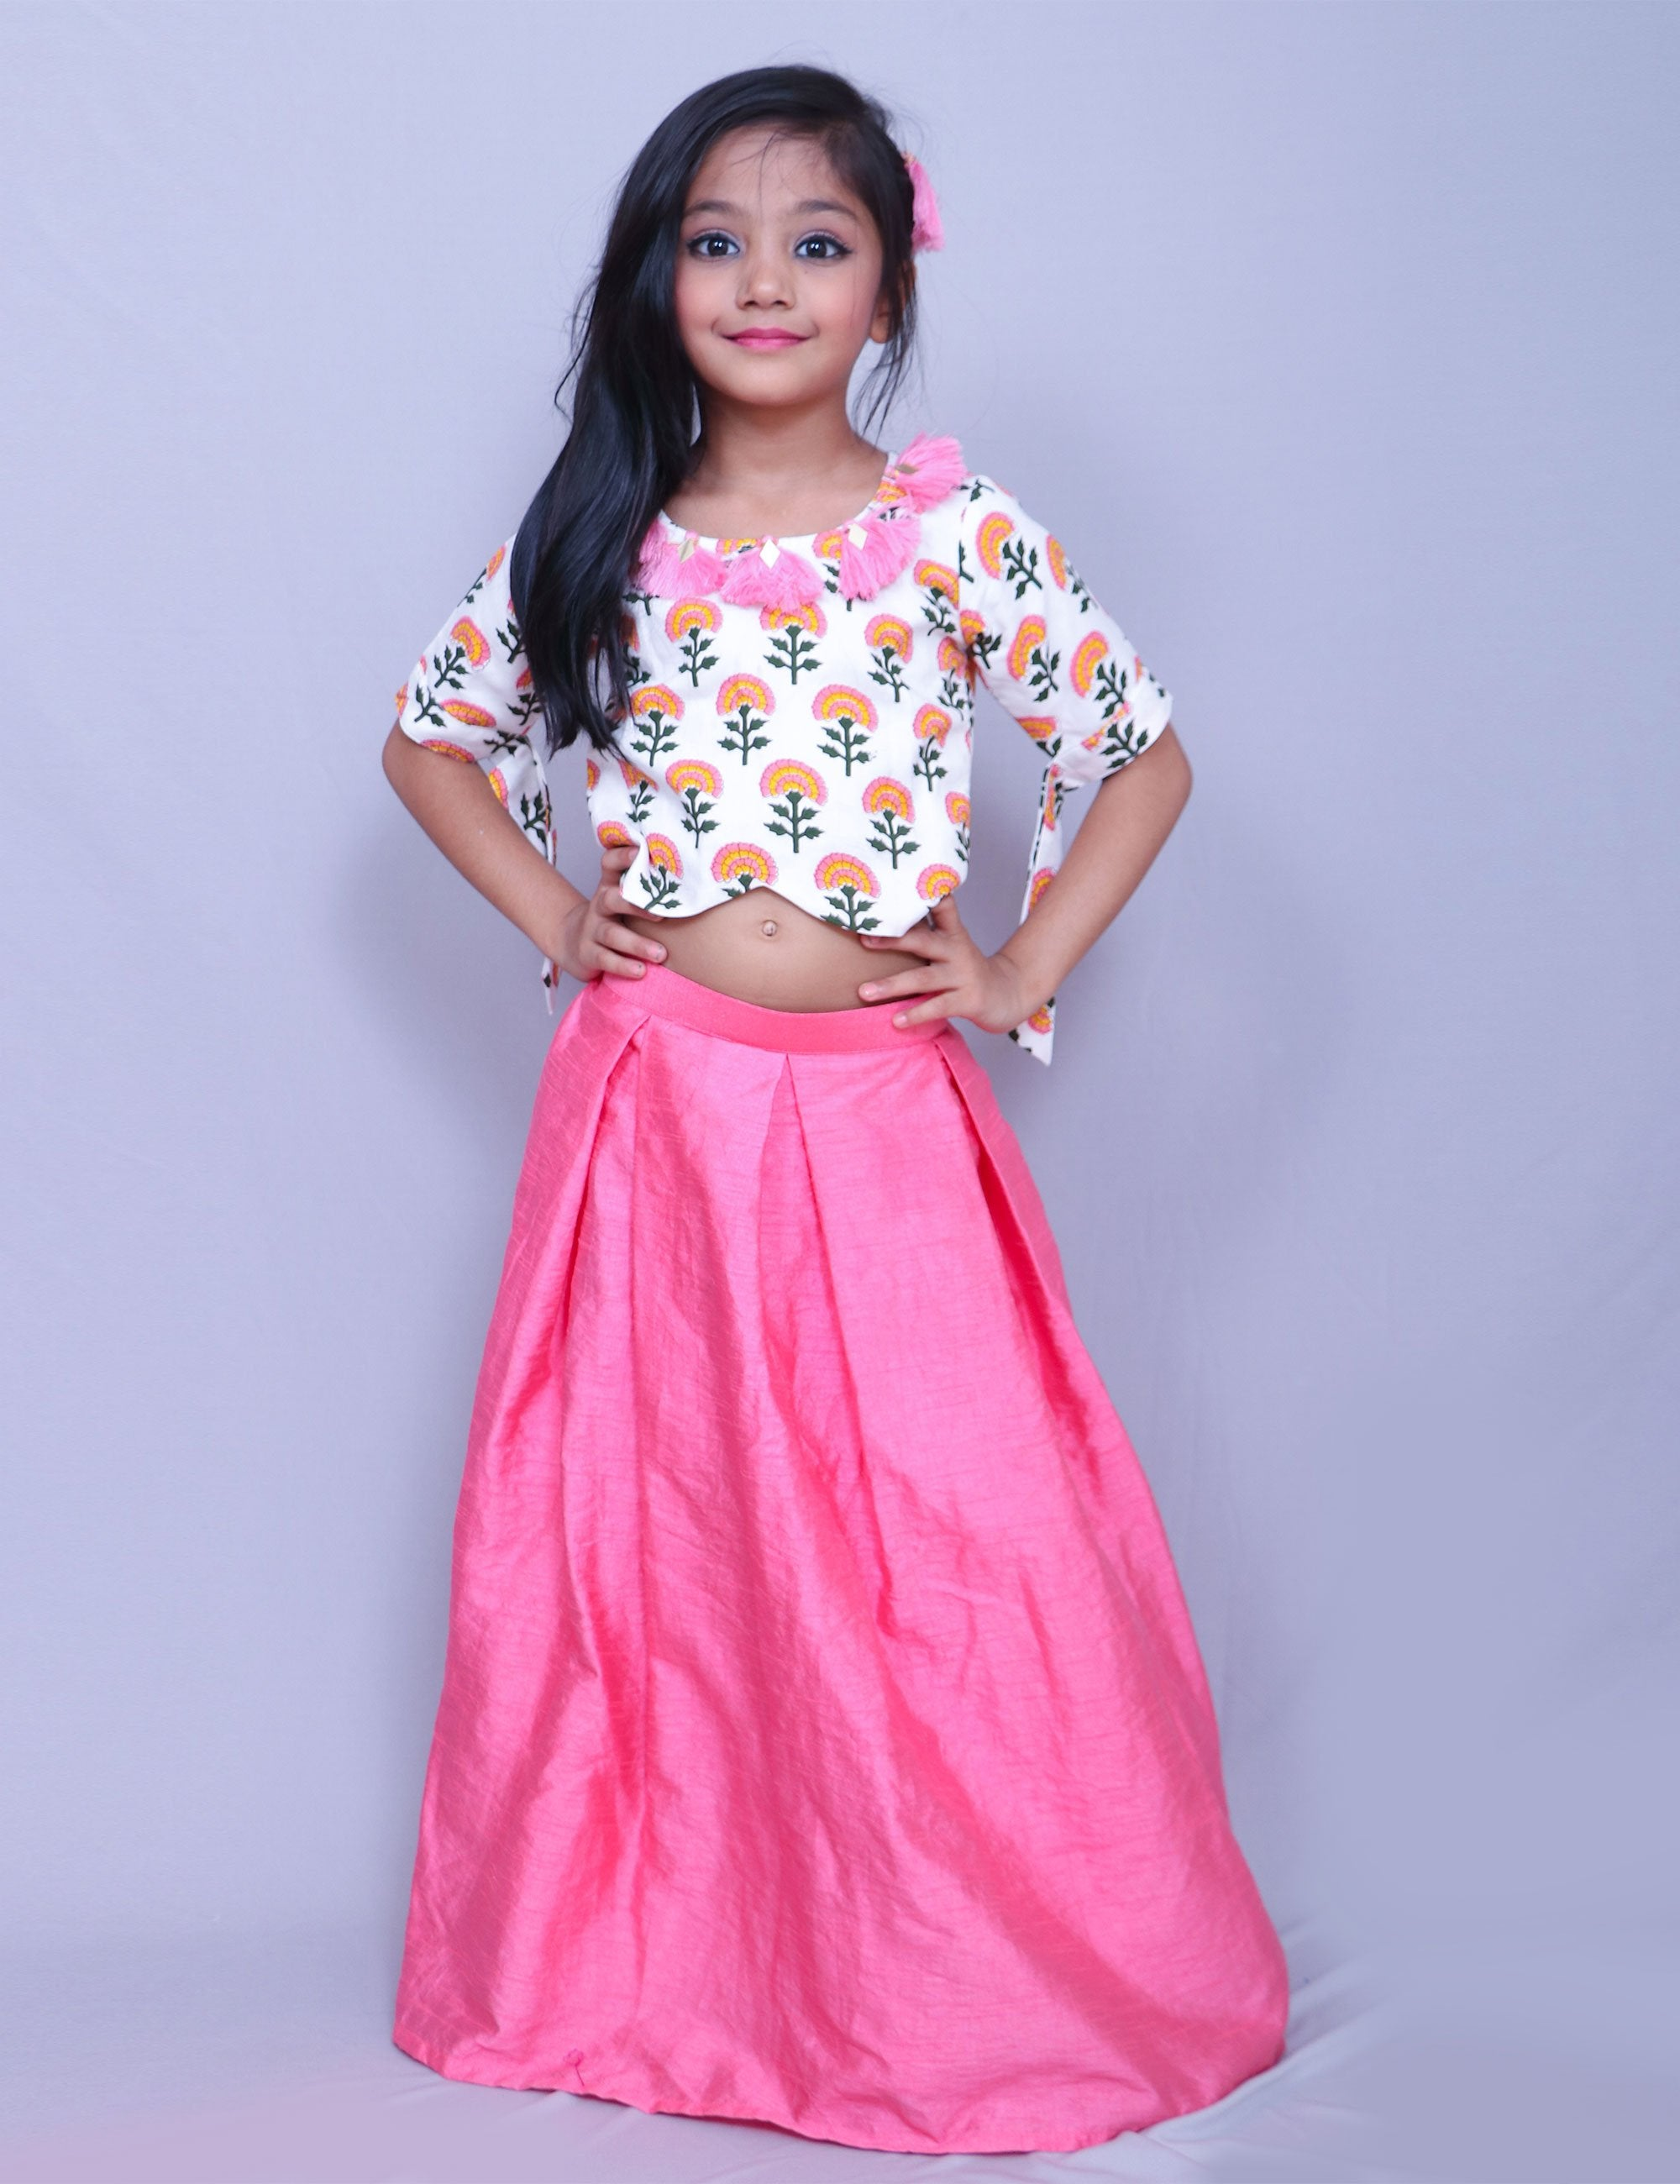 Floral Print Crop Top with Skirt for Girls